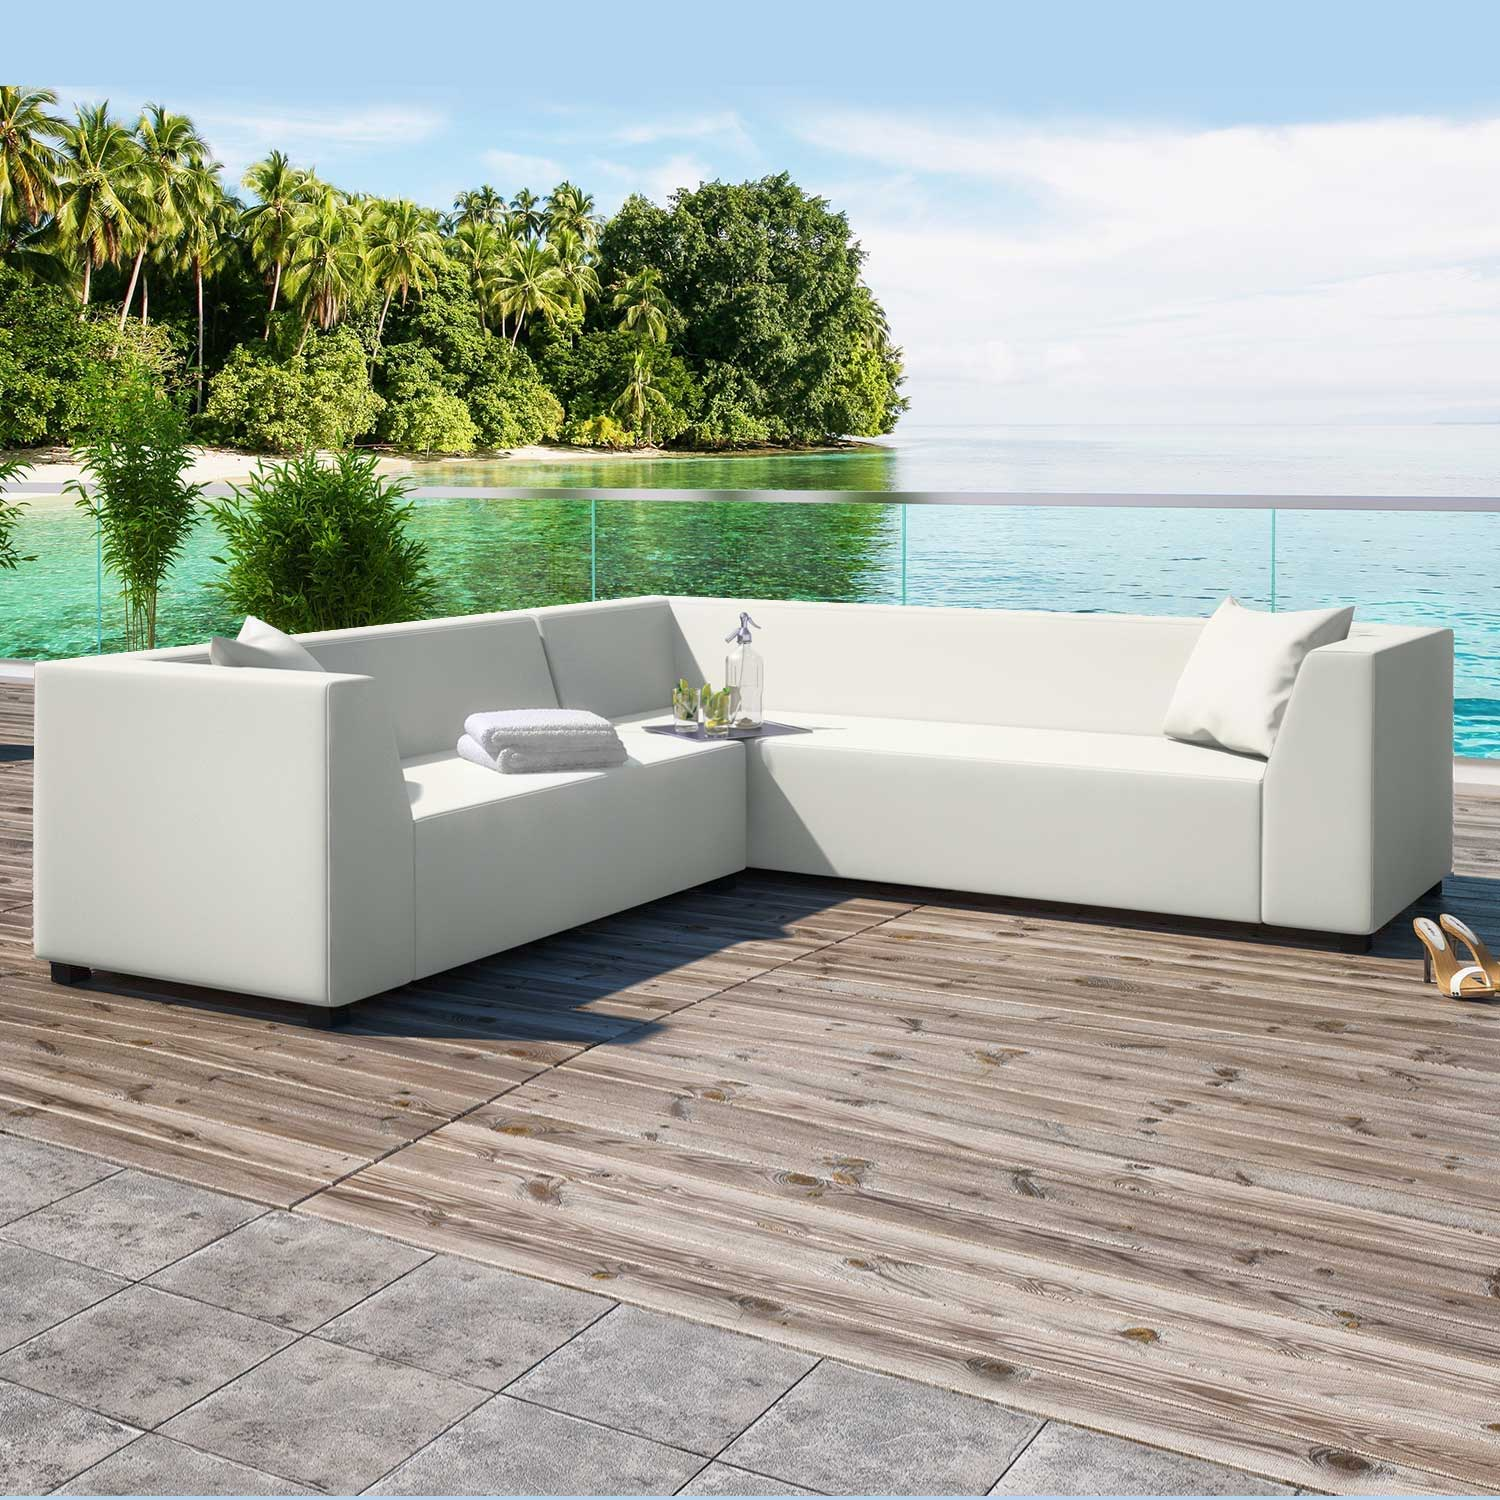 Alkmaar White 2 Piece Outdoor Garden Right Corner Sofa Collection